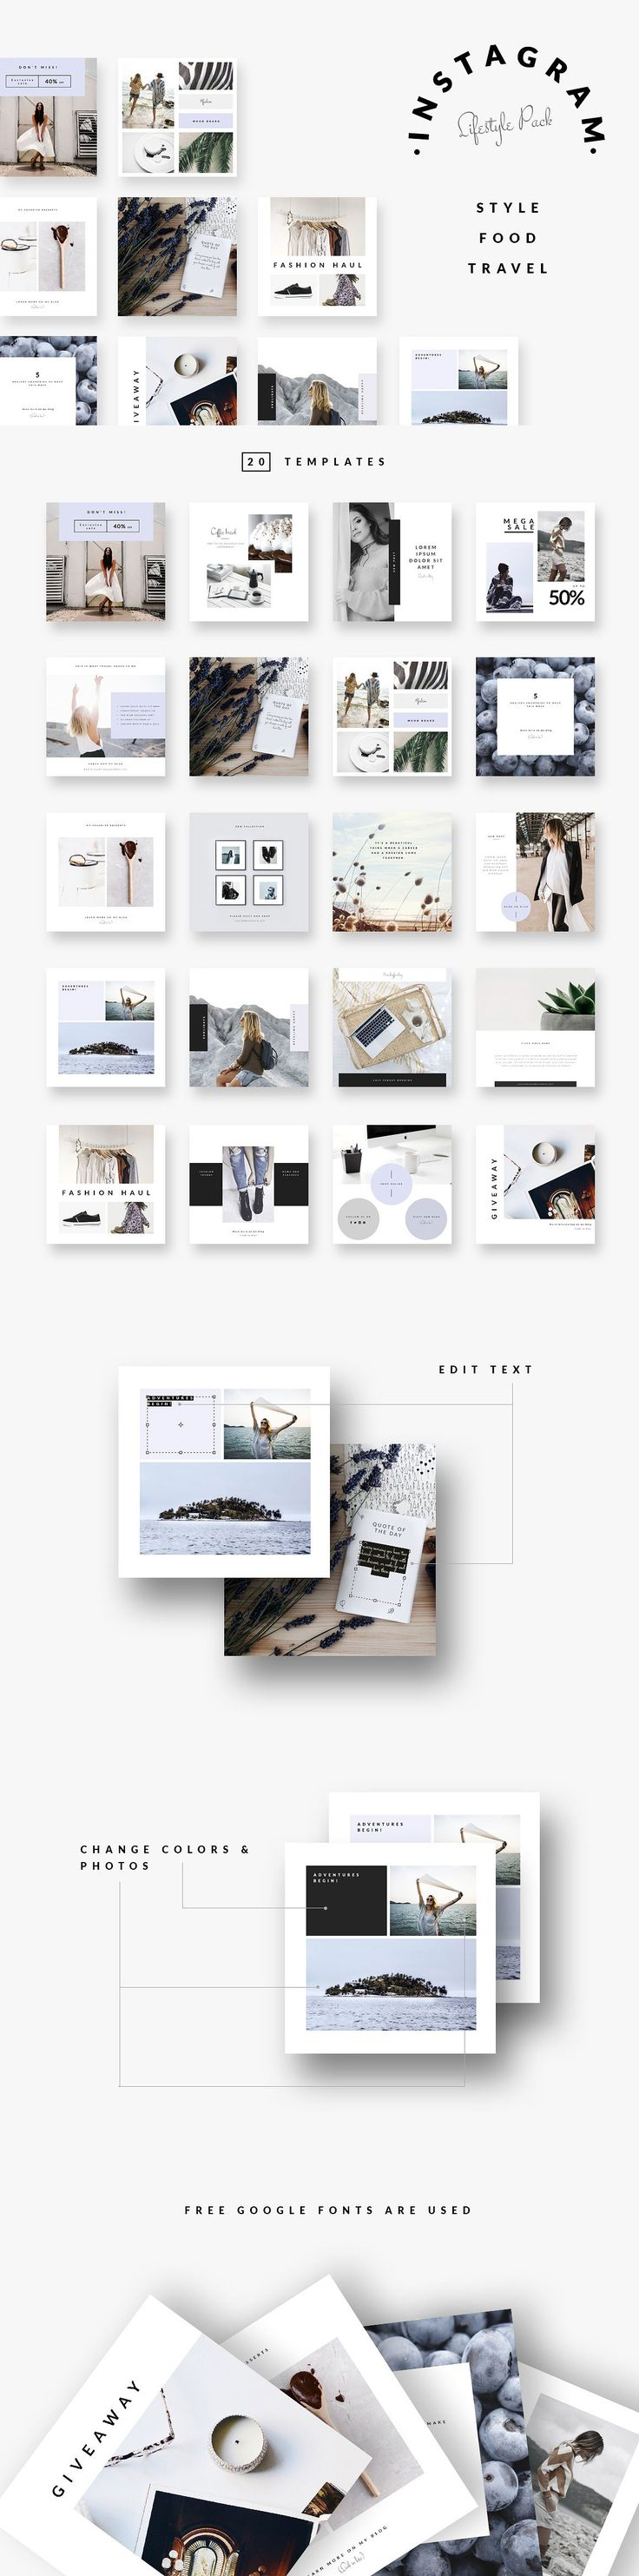 #Freebies : Instagram Pack - STYLE FOOD TRAVEL - These templates are ideal for #fashion, #lifestyle and #traveling #bloggers, boutiques' owners, #photographers, etc. Can be used in various #websites. You can replace text and photos, change #fonts to your favorite ones. Change colors to match your mood or #brand. Requires Adobe #Photoshop. ( #graphics #branding #typography #promotion #socialmedia #Instagram )